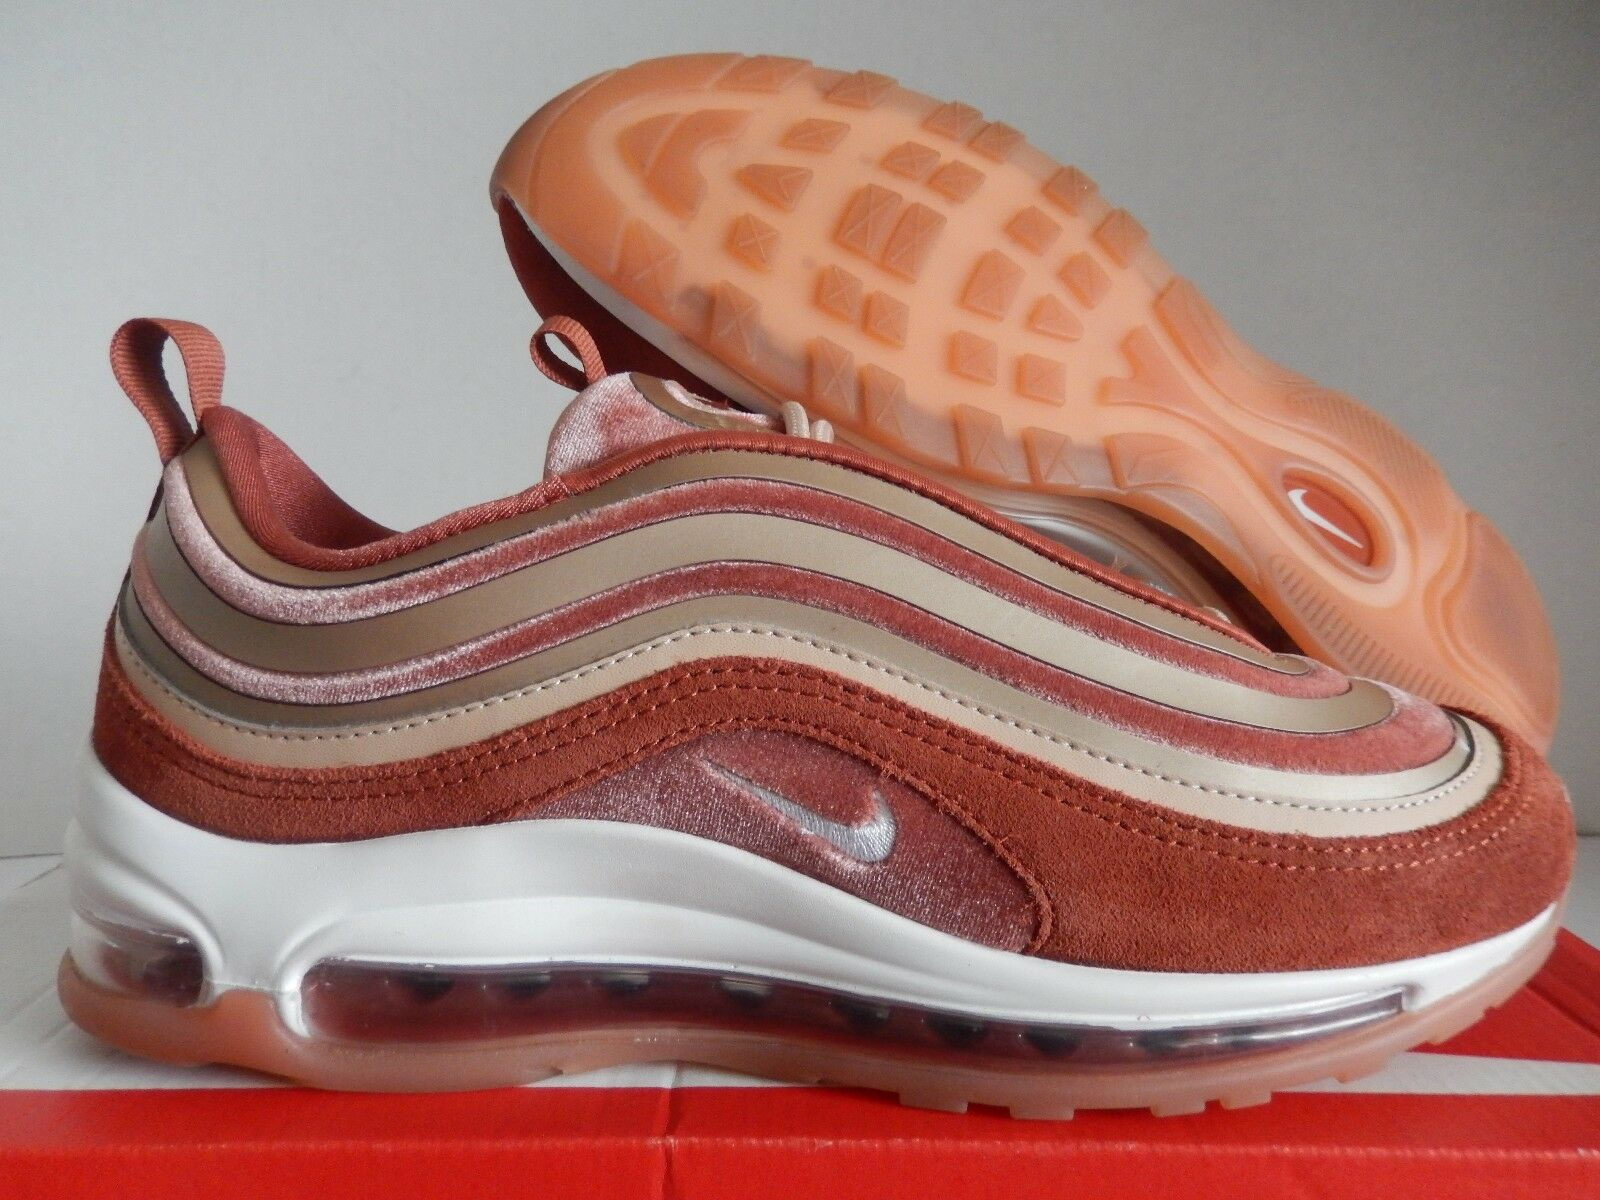 WMNS NIKE AIR MAX 97 UL ULTRA '17 LX DUSTY PEACH SZ 8.5 [AH6805-200]